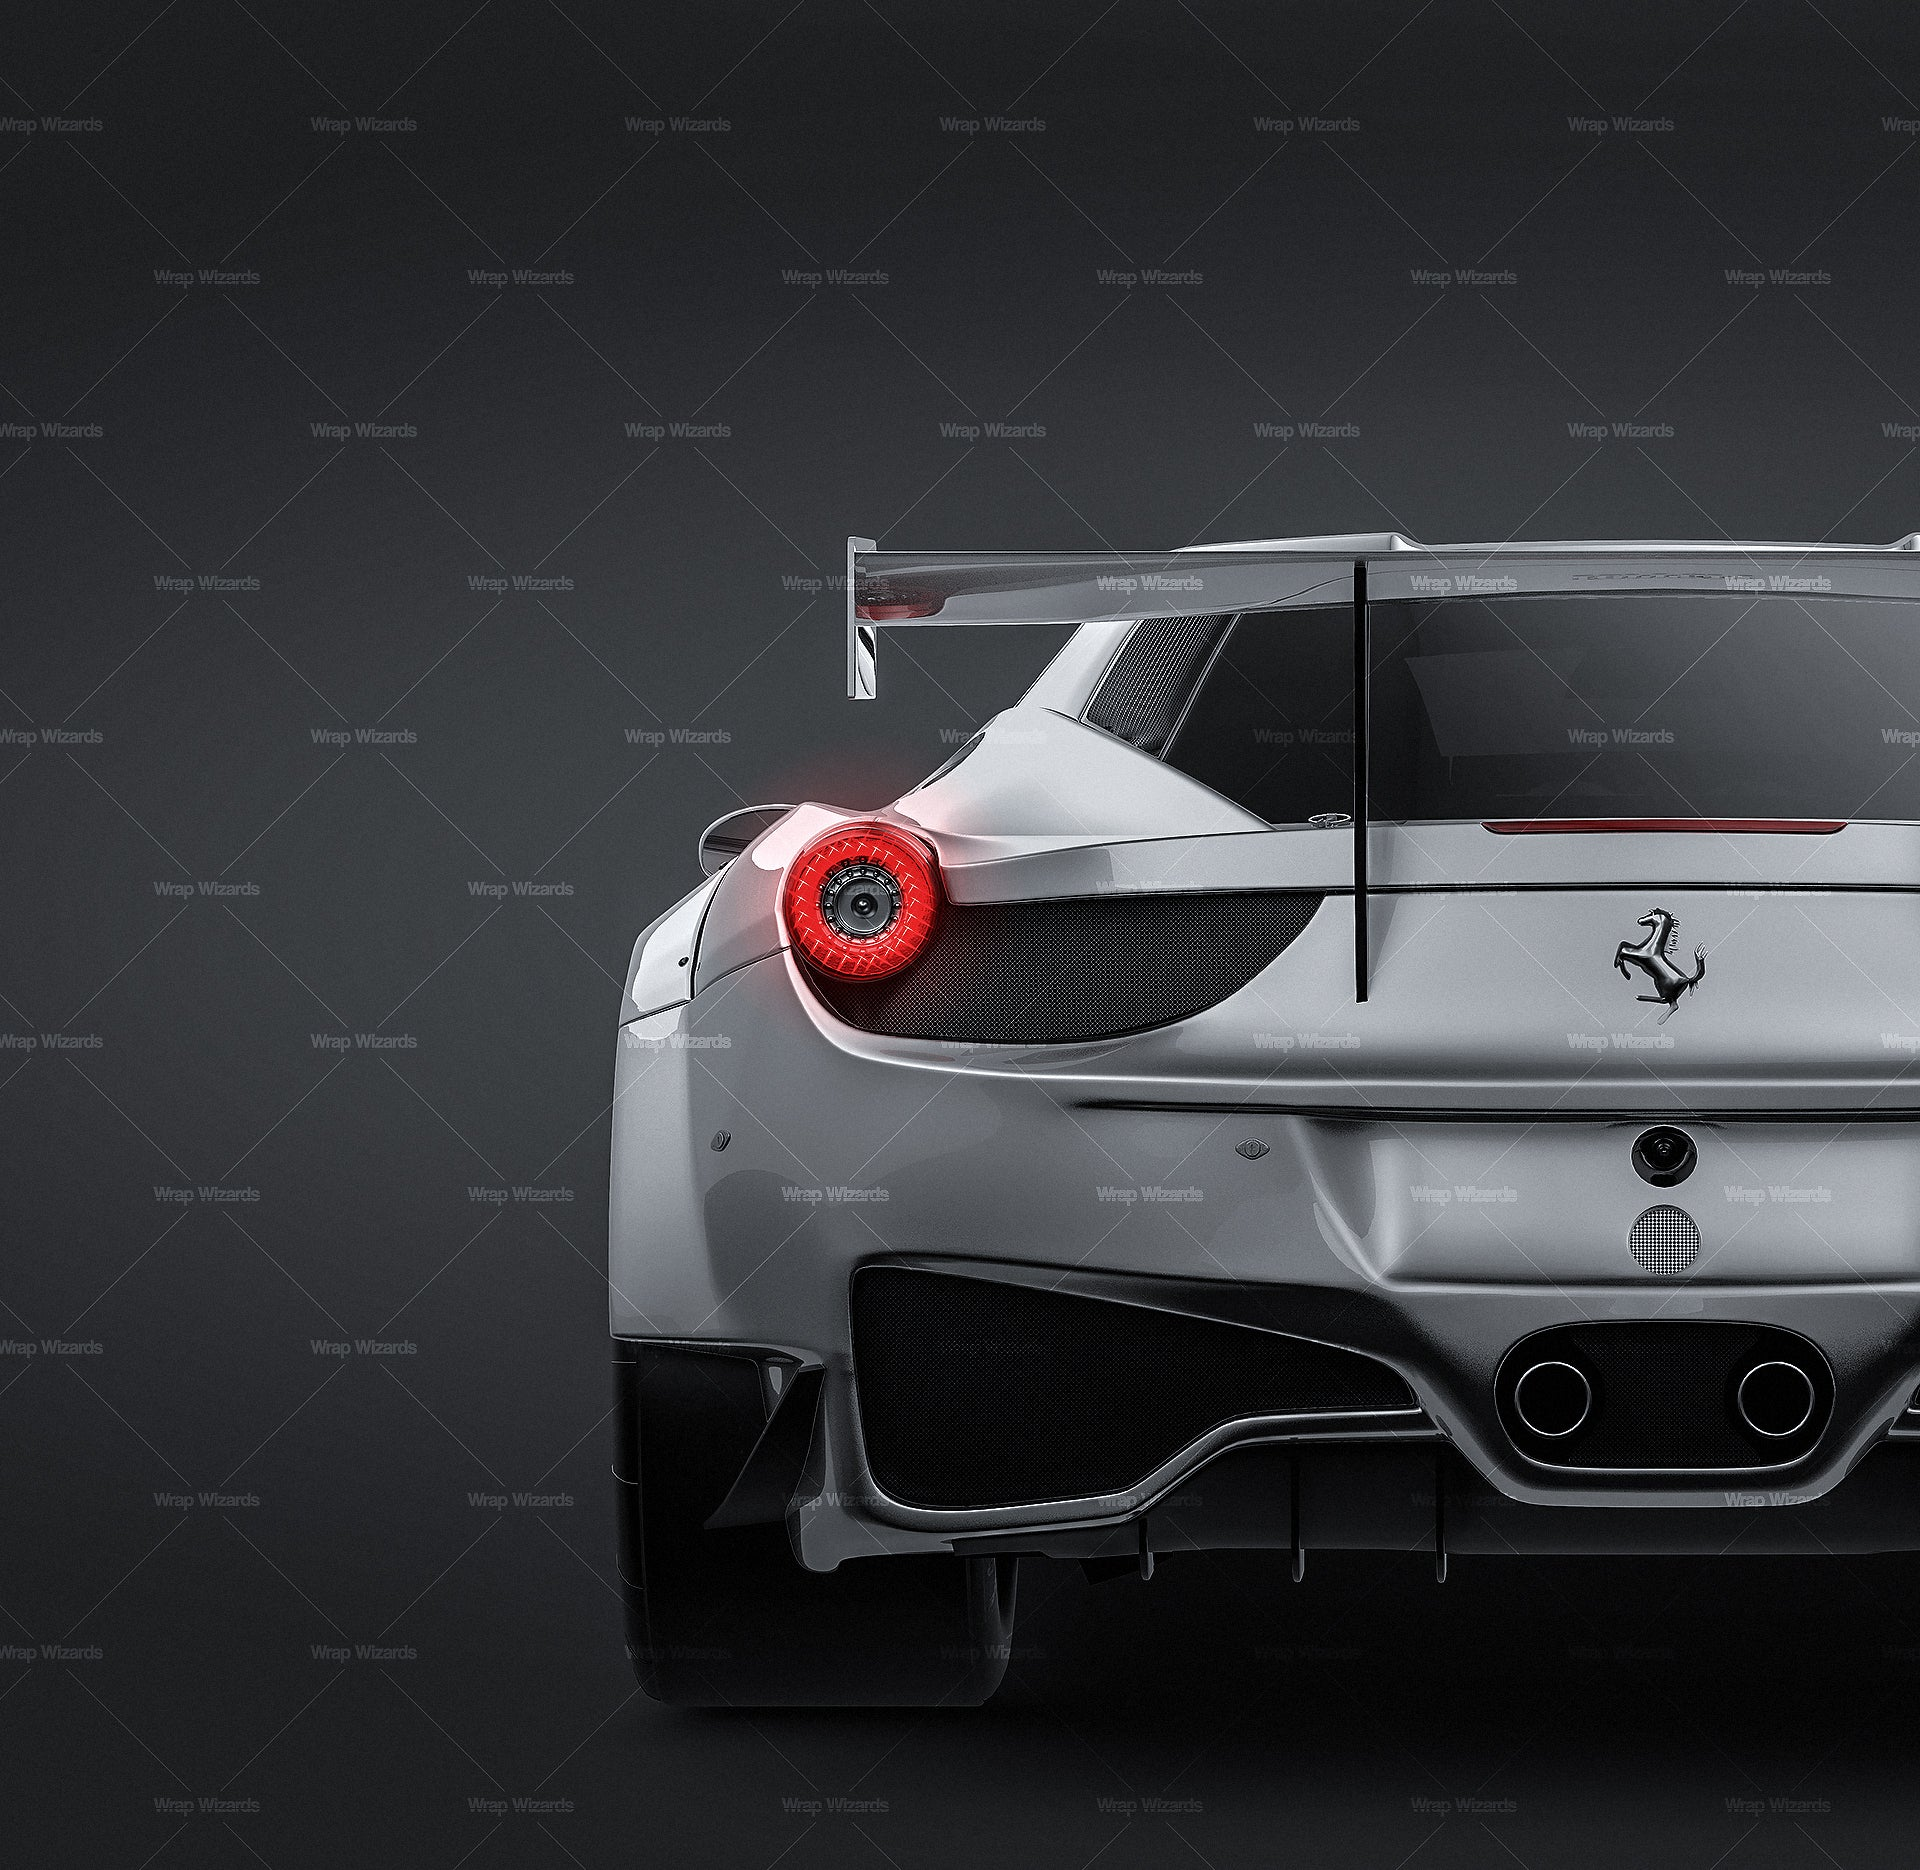 Ferrari 458 GT3 2014 glossy finish - all sides Car Mockup Template.psd